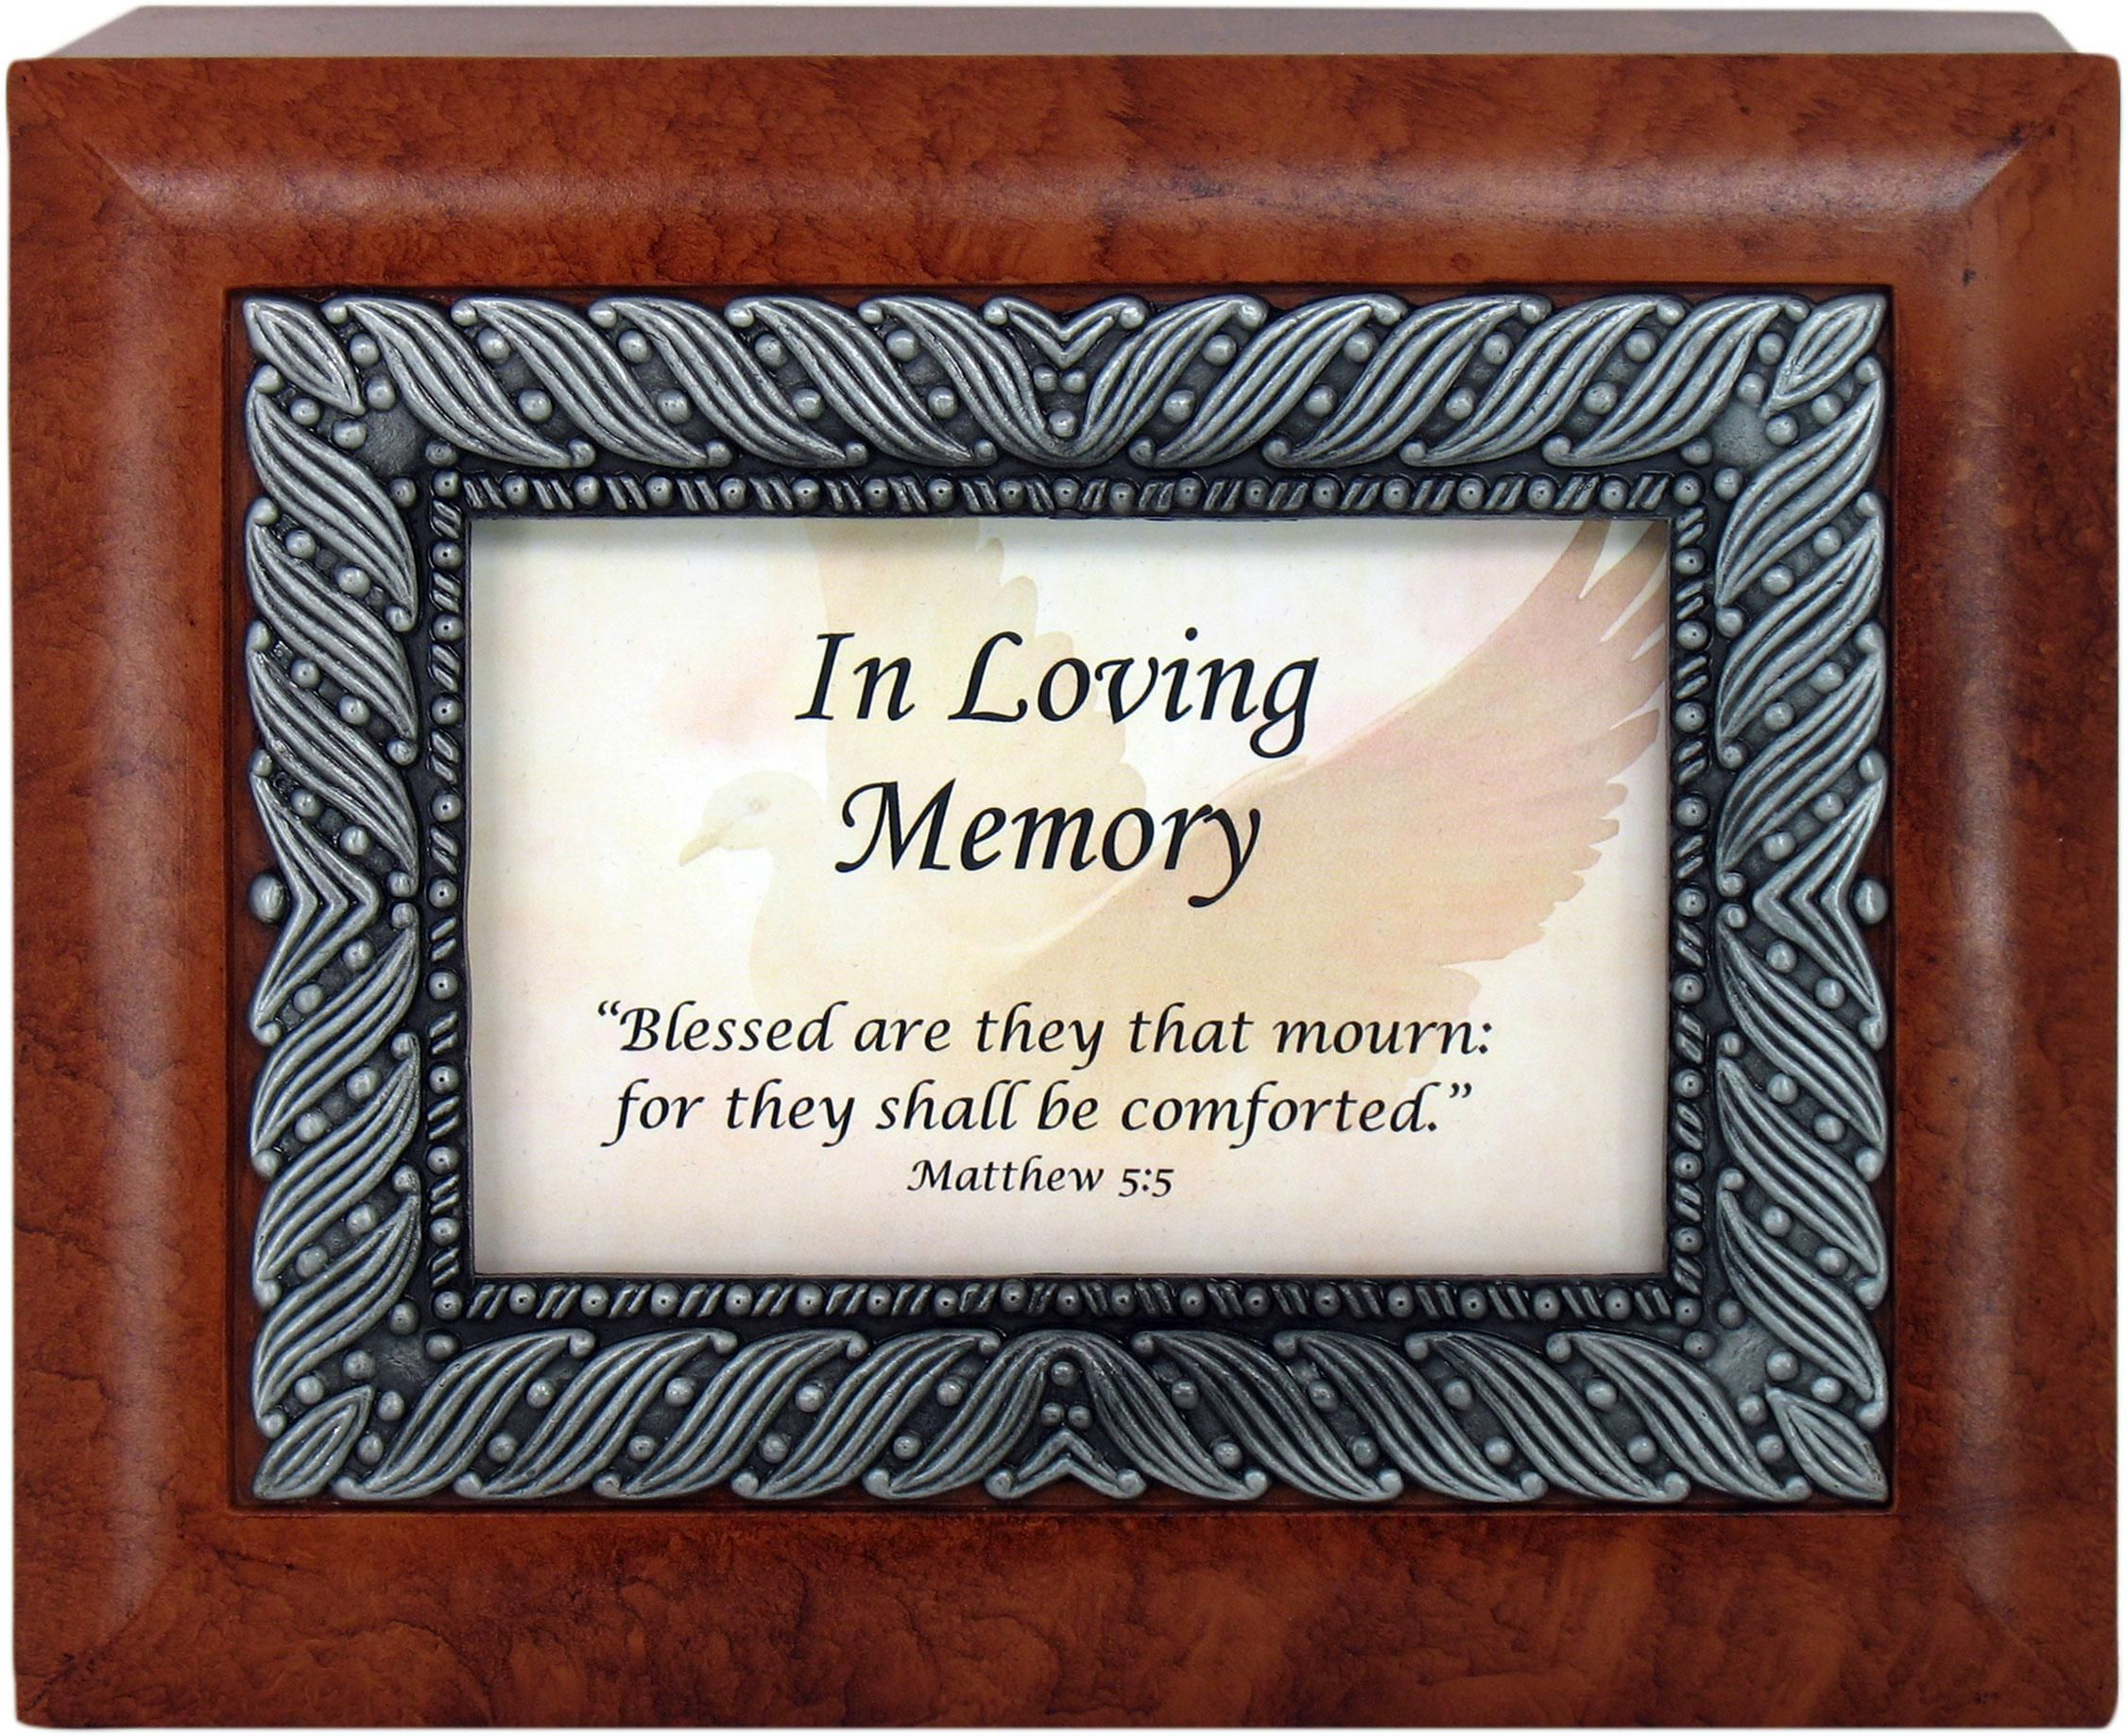 persons can make it more affectionate by in loving memory personalized memorial wood plaque memorial gifts memorial frames are great ways to remember a